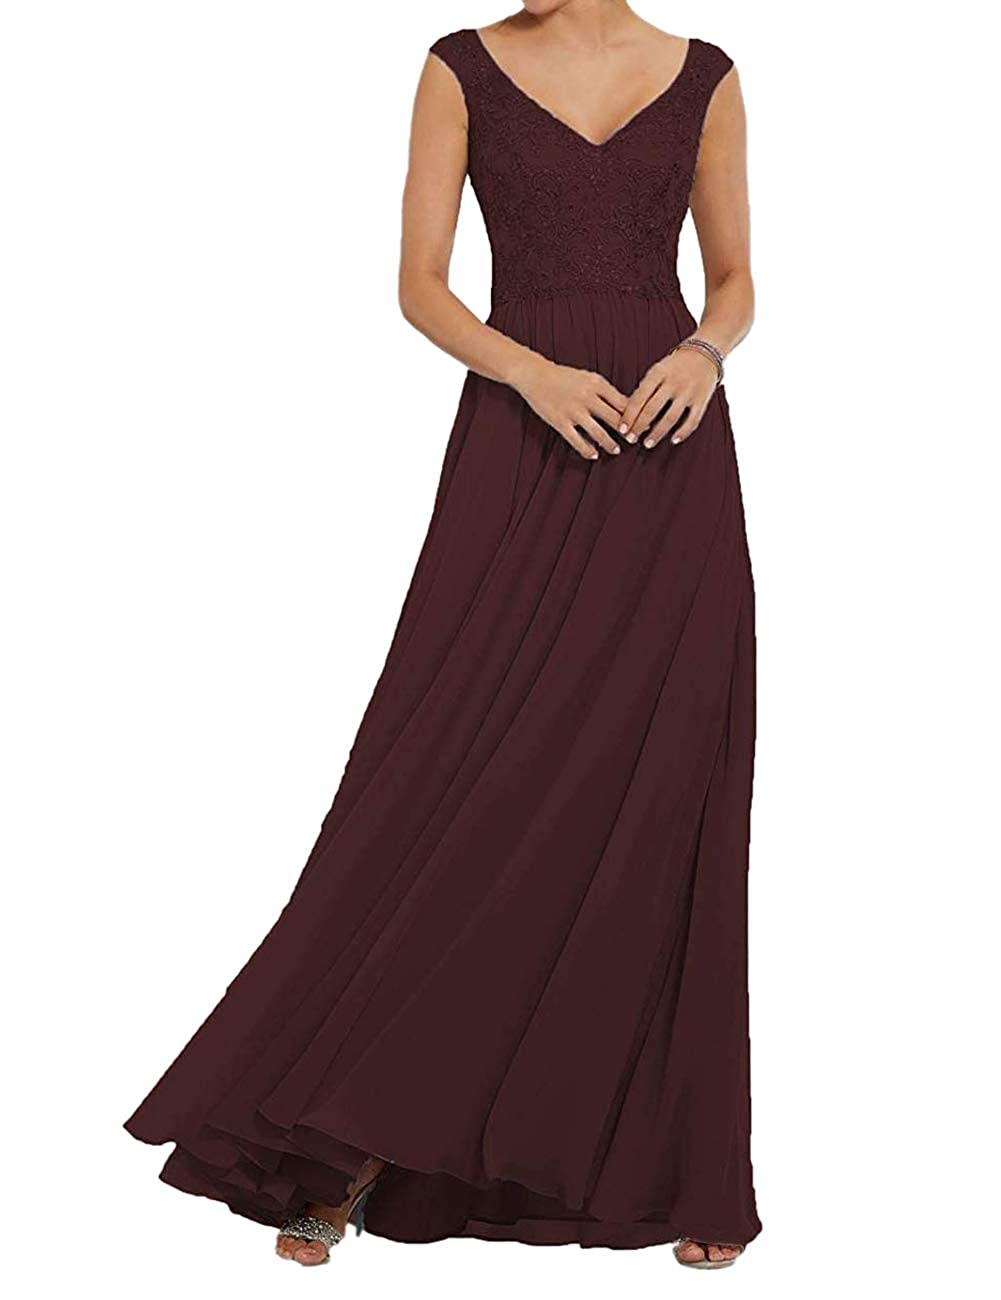 Dark Burgundy ASBridal Prom Dresses Long Sequin Quinceanera Dres Backless Formal Evening Gown with Sash